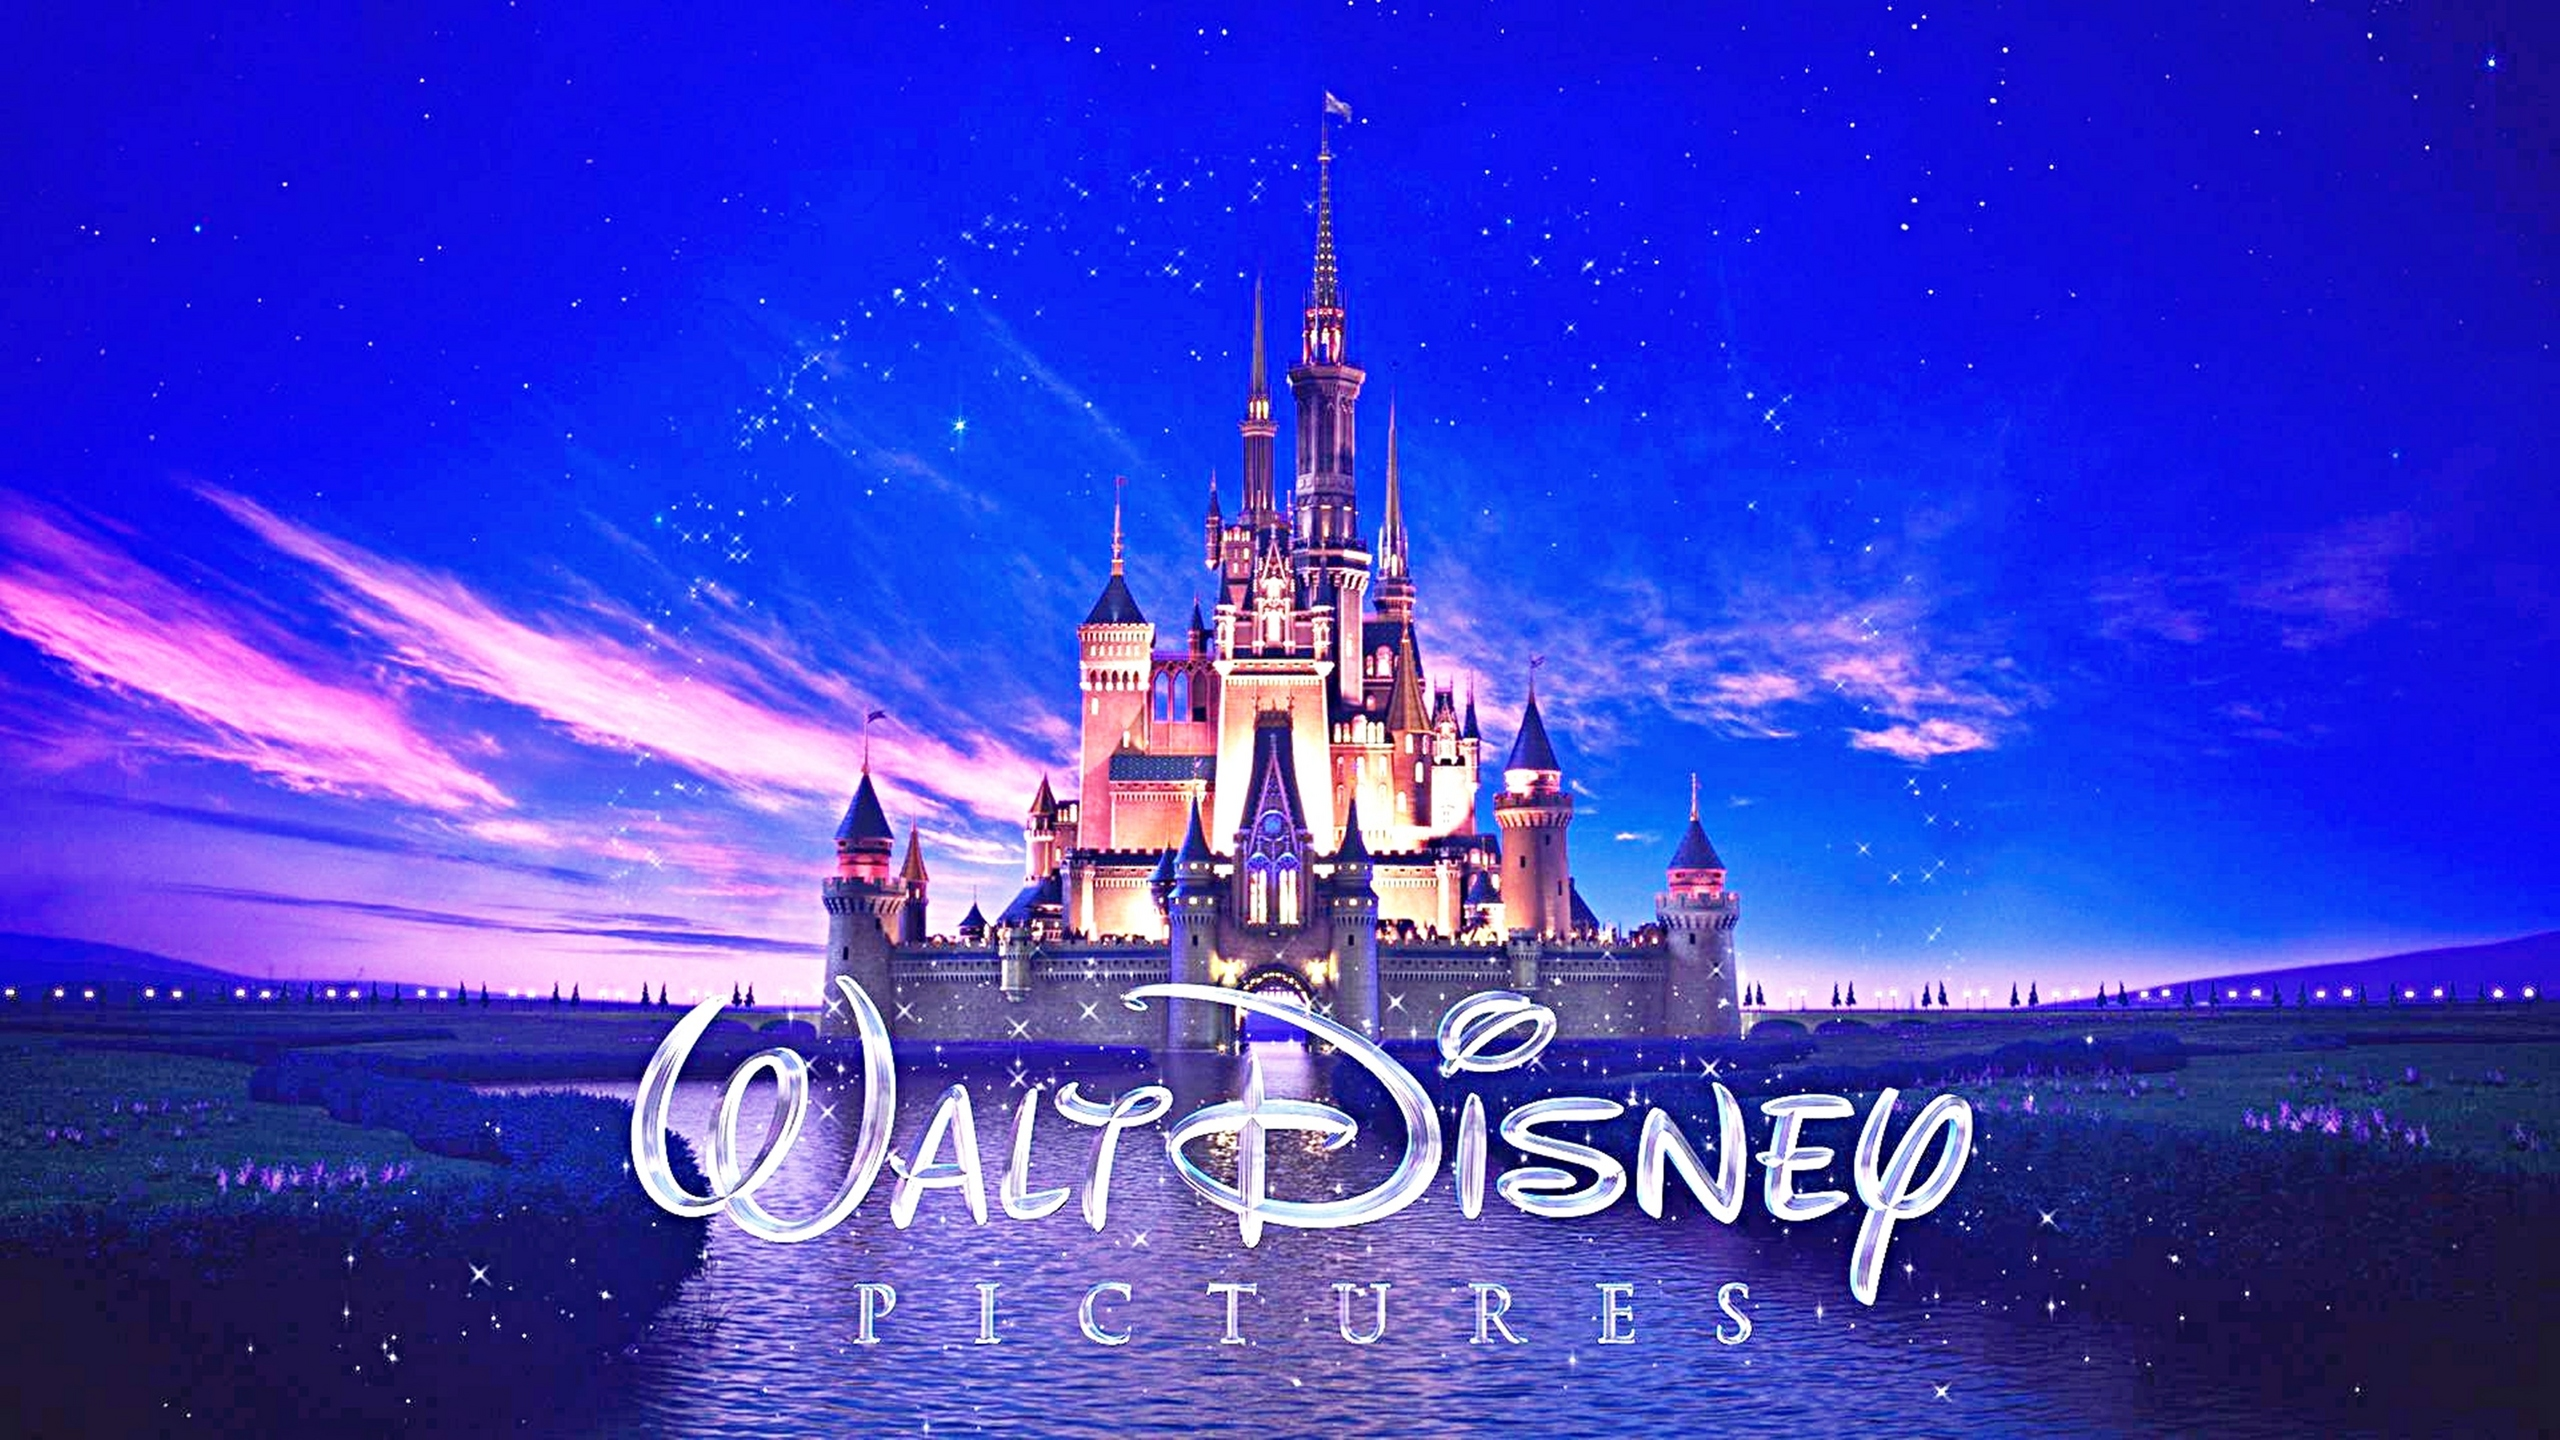 Disney Castle Background   HD Wallpapers 2560x1440